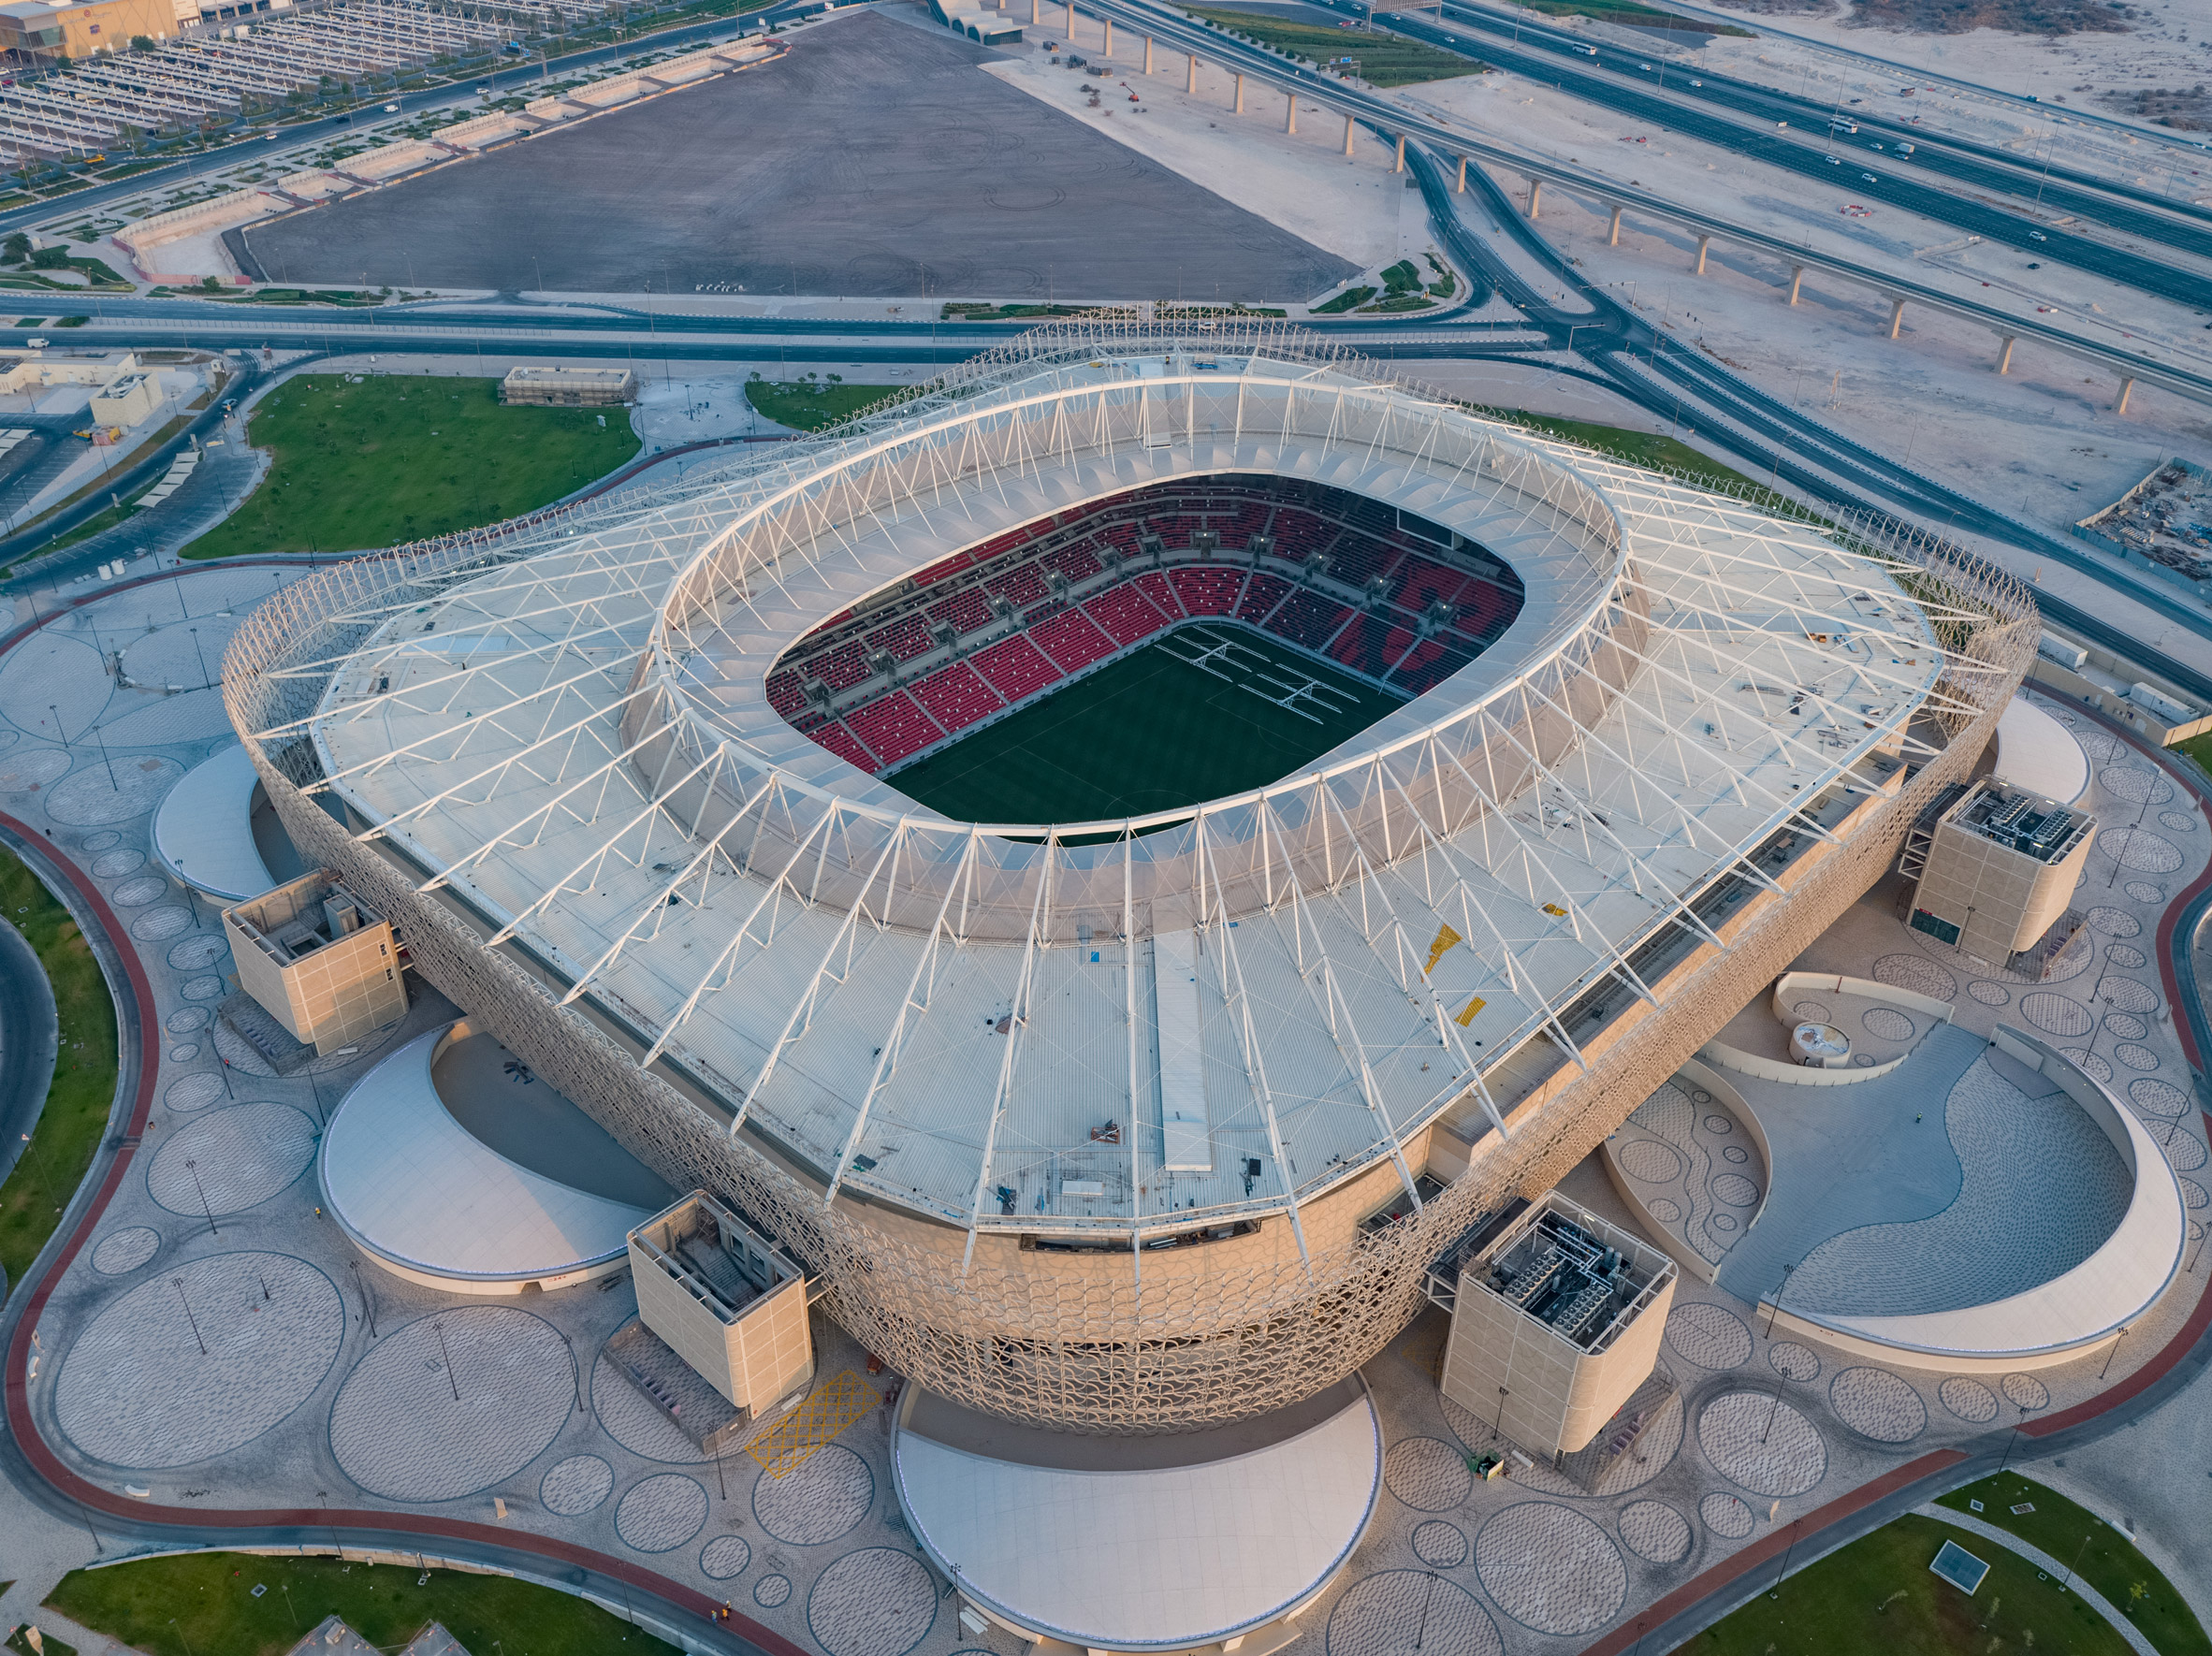 Ahmed Bin Ali Stadium in Qatar